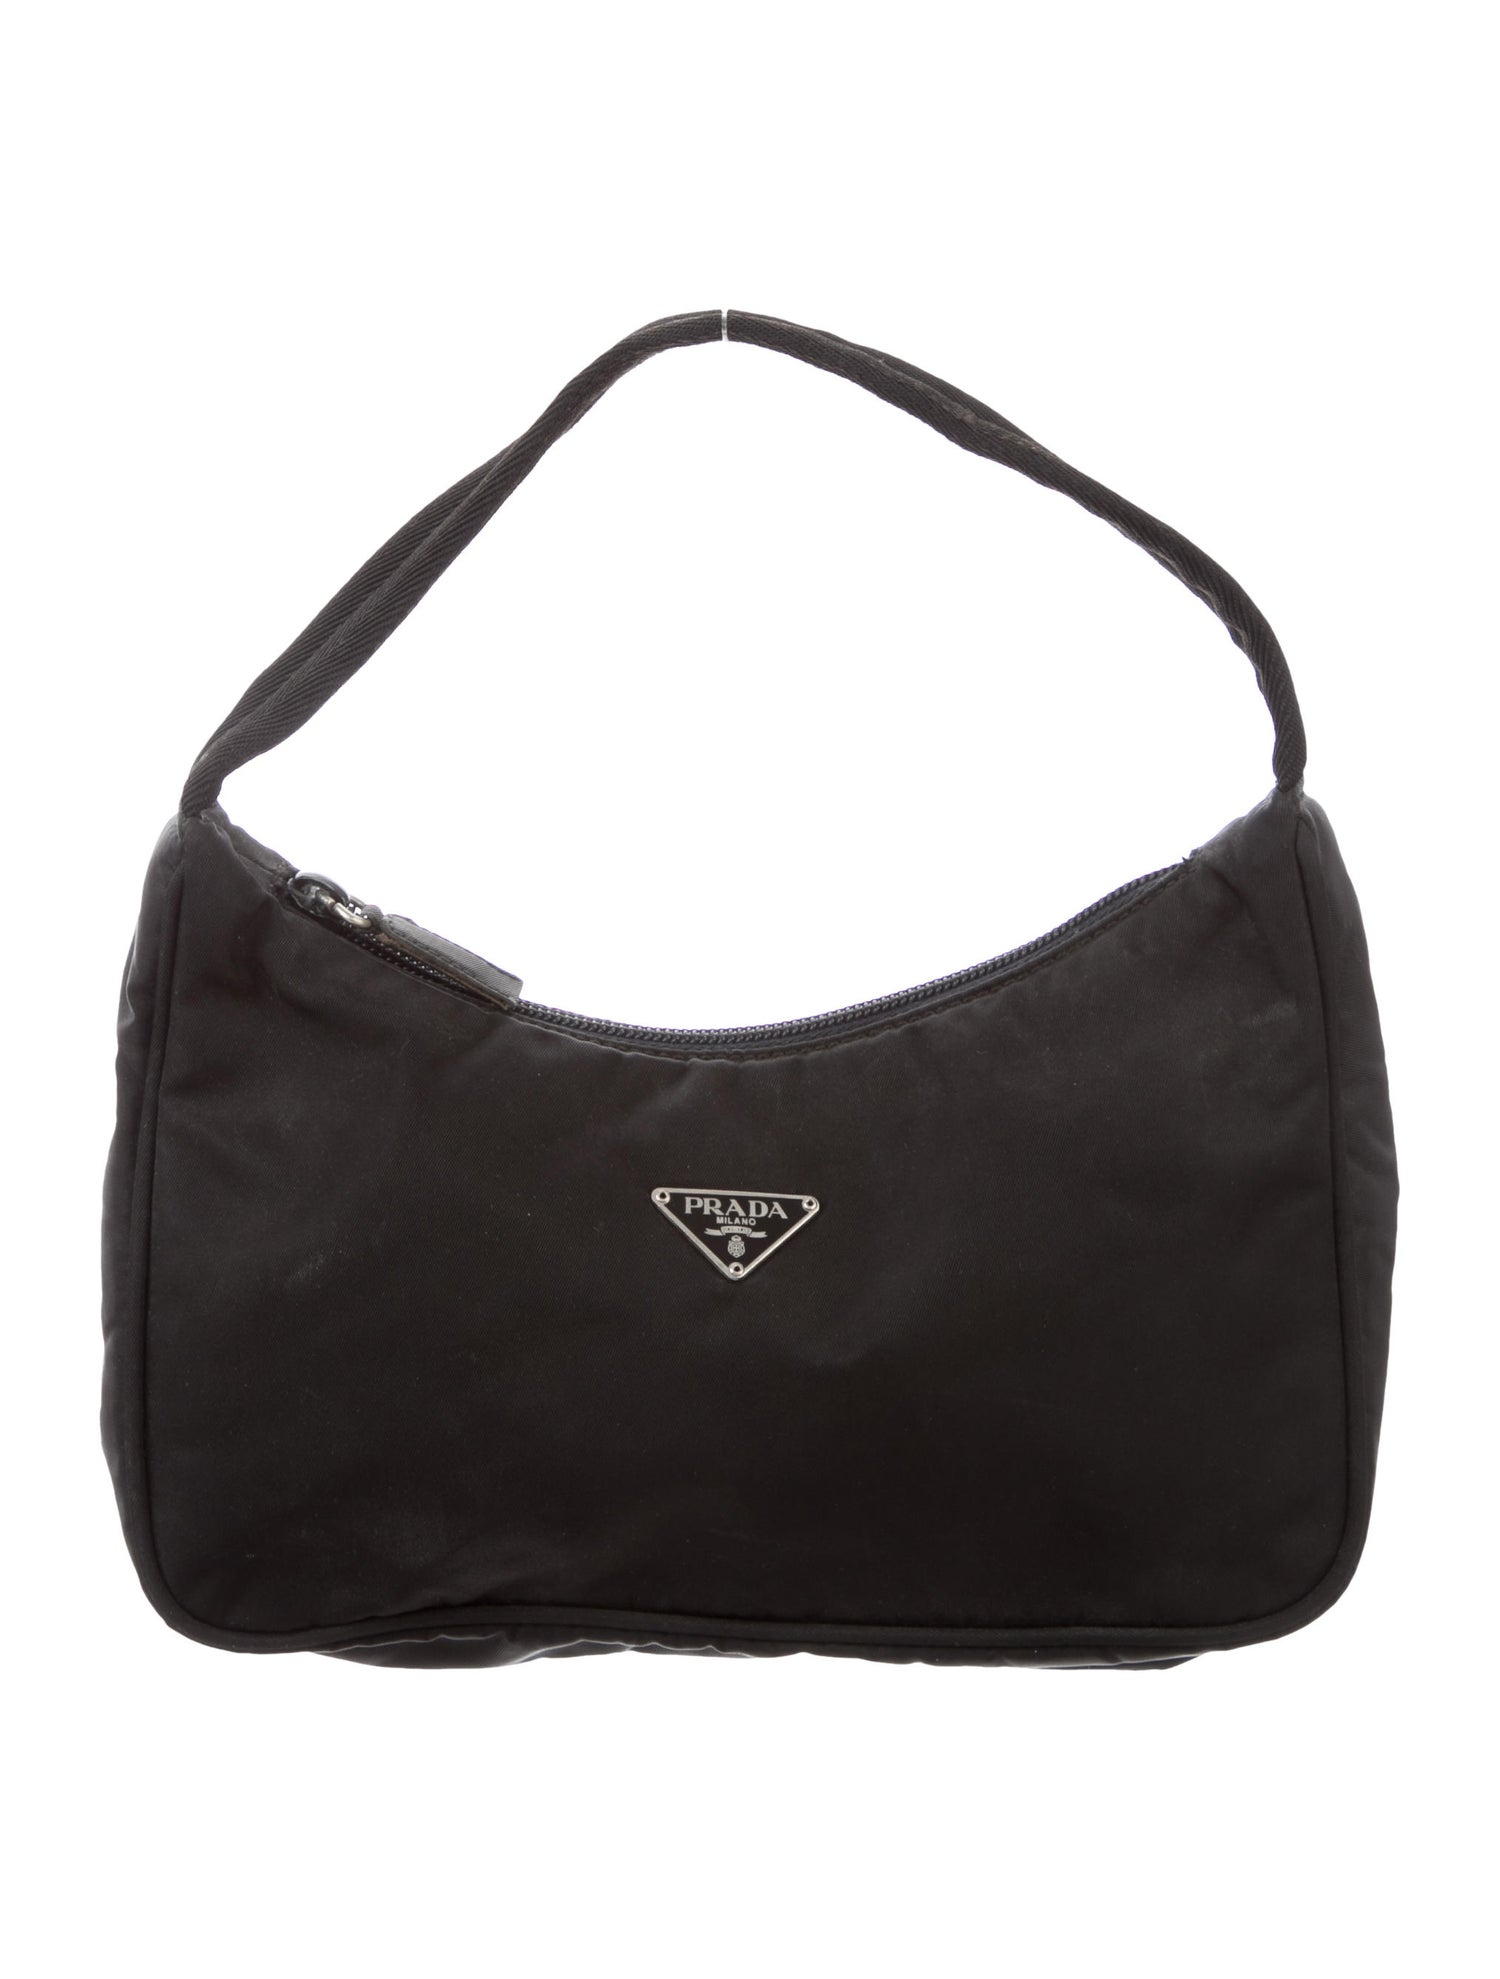 Mini Hobo Bag by Prada, available on therealreal.com for $475 Kendall Jenner Bags Exact Product